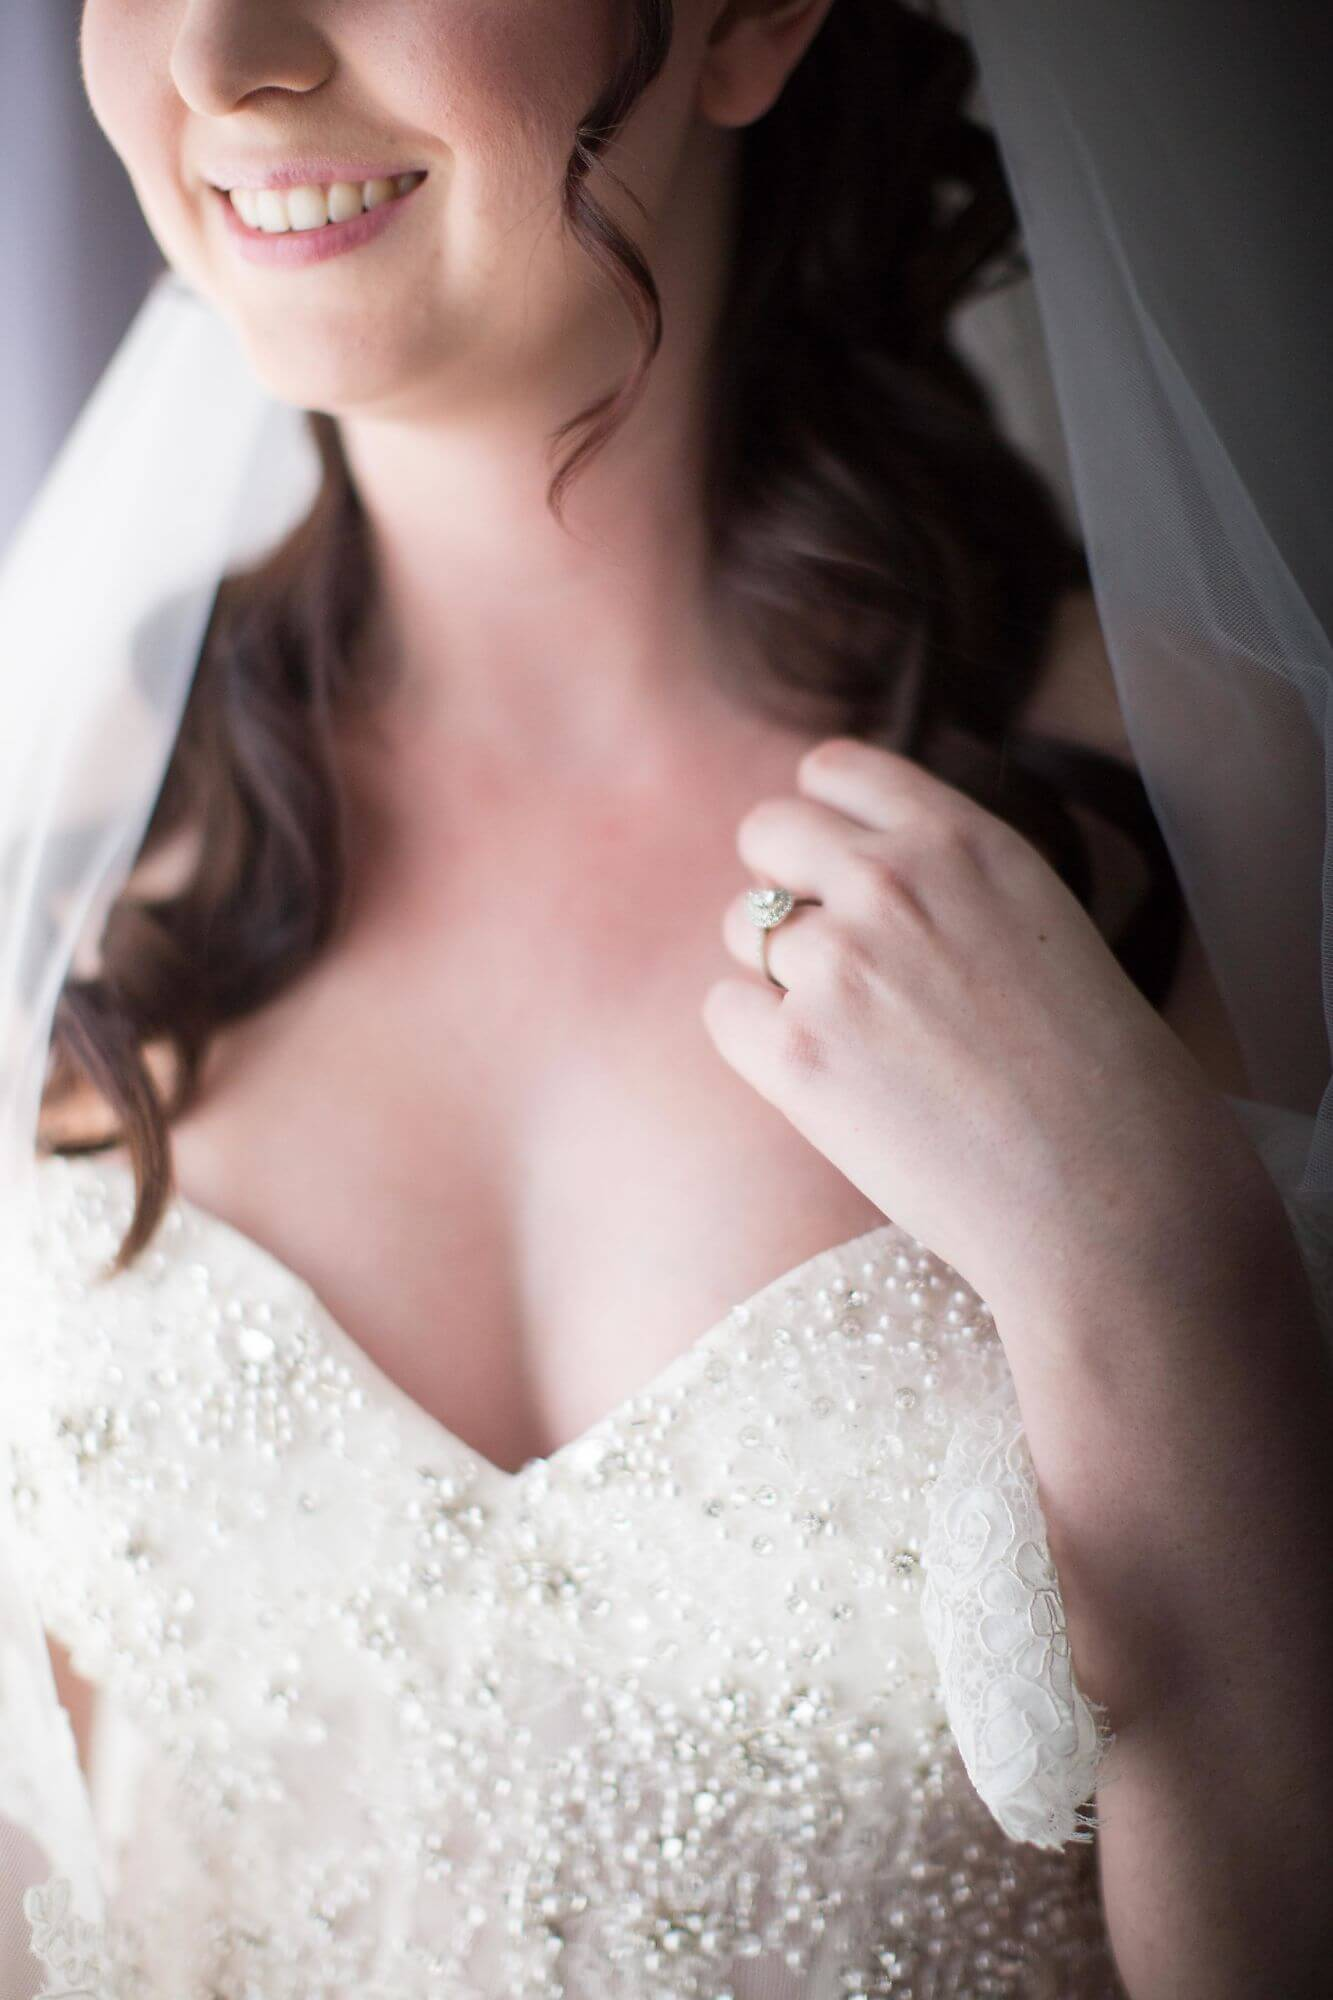 Photo of upper half of bride smiling to show bridal gown and engagement ring detail - Historia Wedding and Event Planning